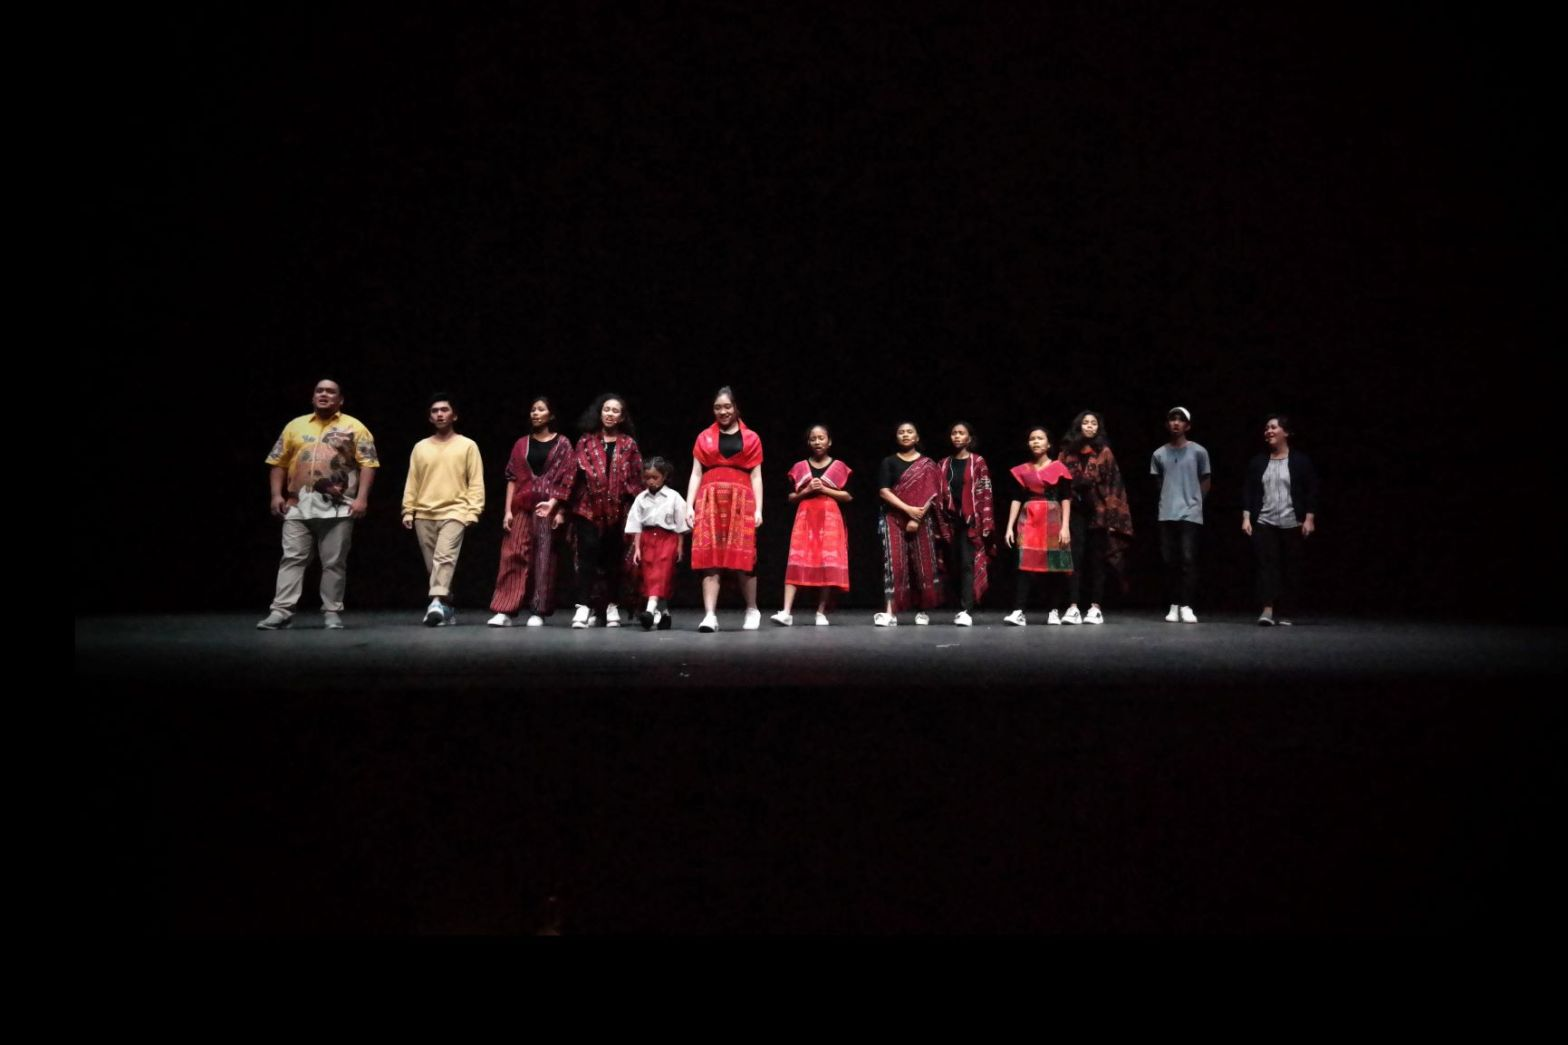 Image of Actors on a Stage